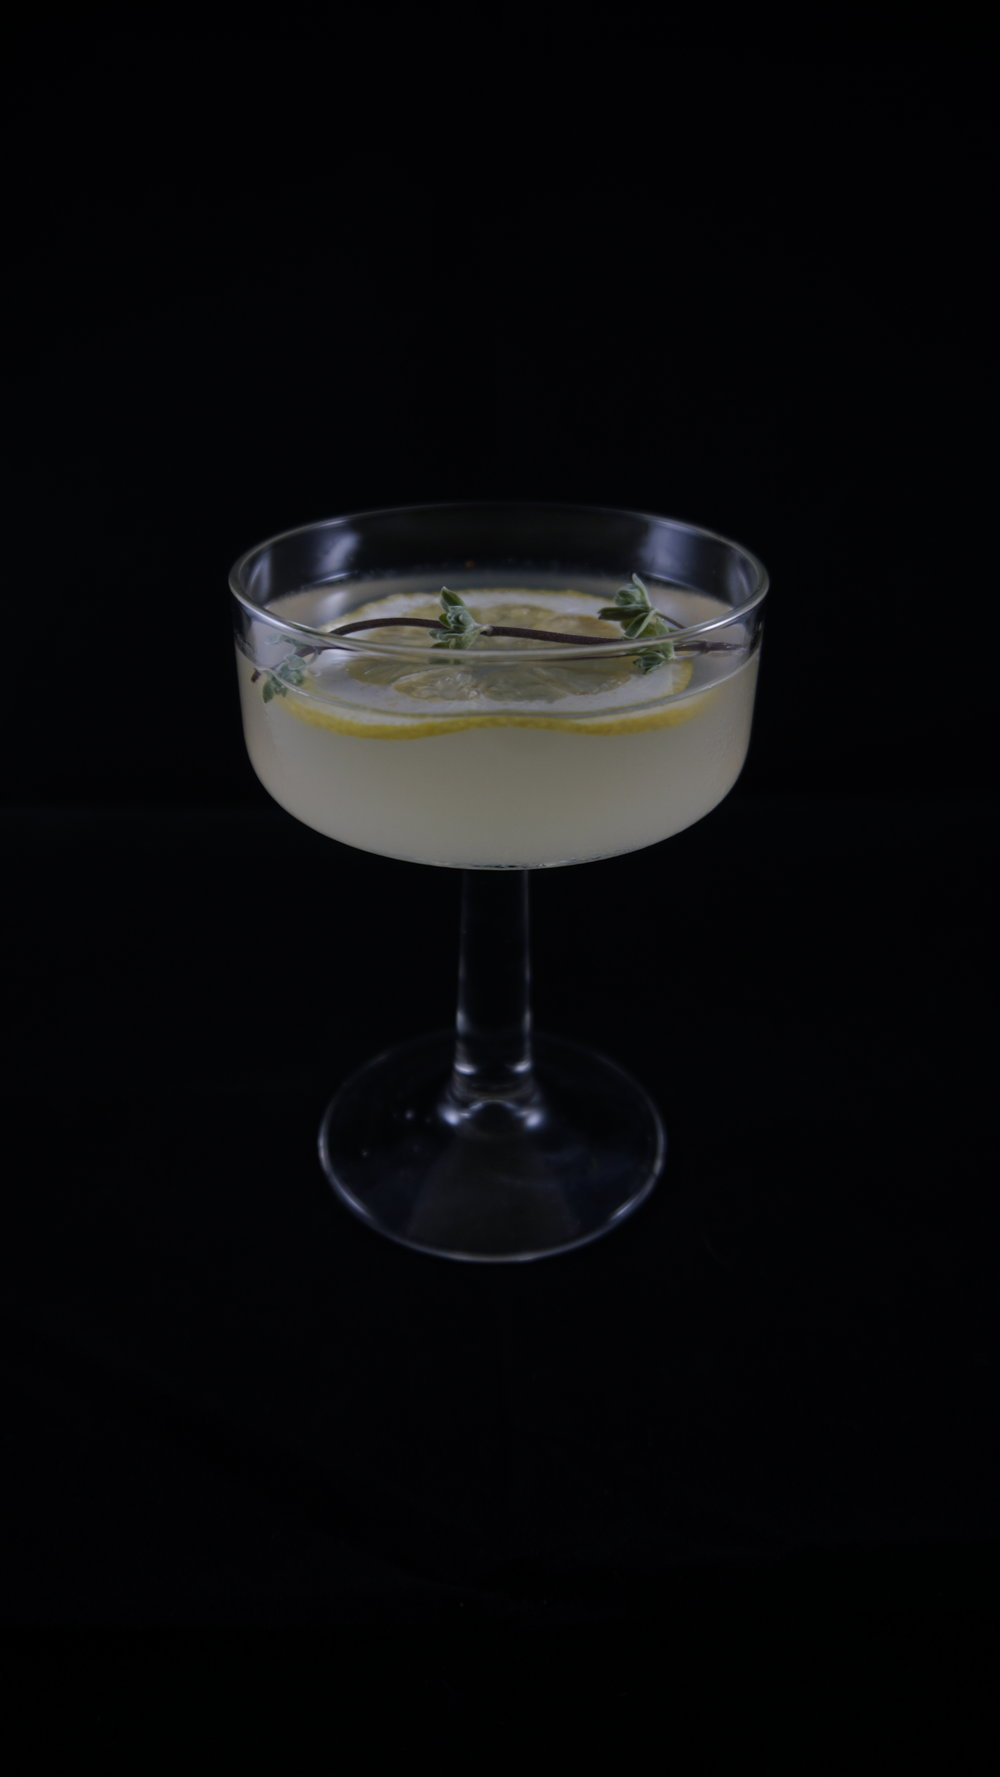 Der Necromancer - .75 oz Sambuco.75 oz Lillet blanc.75 oz Elderflower liquor.75 oz Lemon juiceDash of ginLemon twist for garnishCombine all liquids in a shaker with ice. Strain and pour in tall glass. Add lemon twist for garnish. For extra botanicals on the nose, add a sprig of fresh herbs (here we used fresh marjoram).